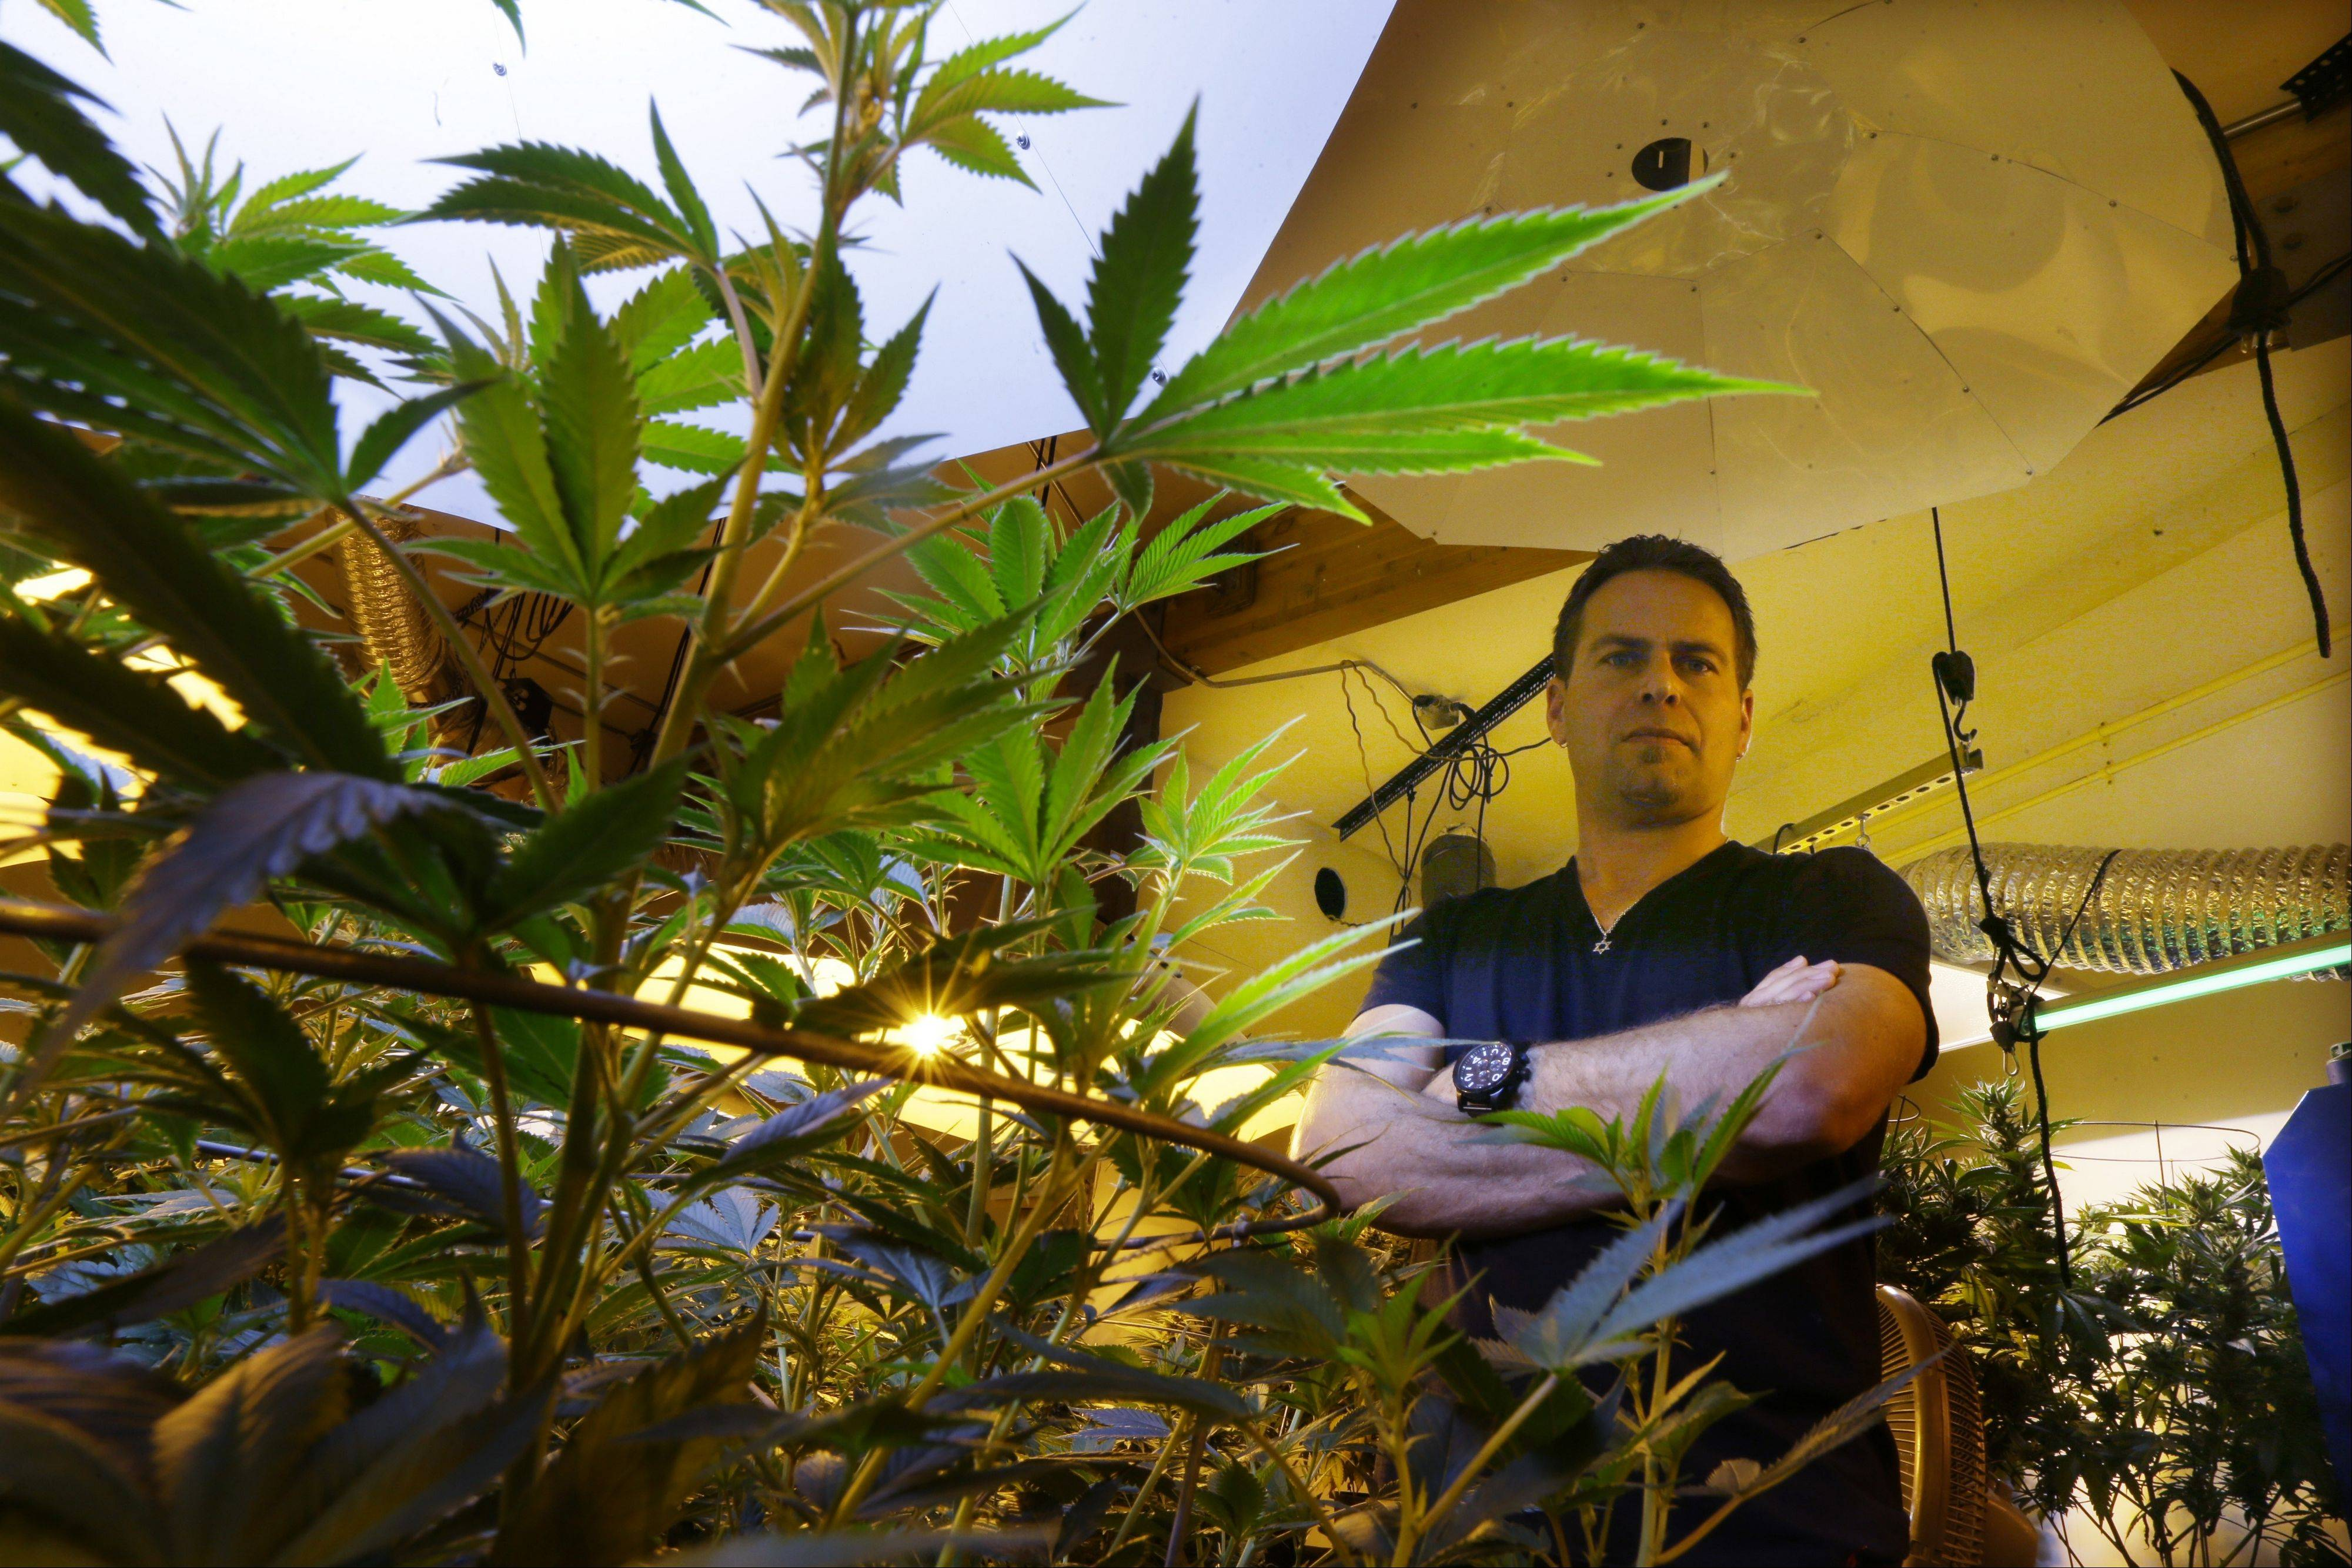 Brent Miller posing for a photo in one of the grow rooms of his medical marijuana grow operation in Seattle.